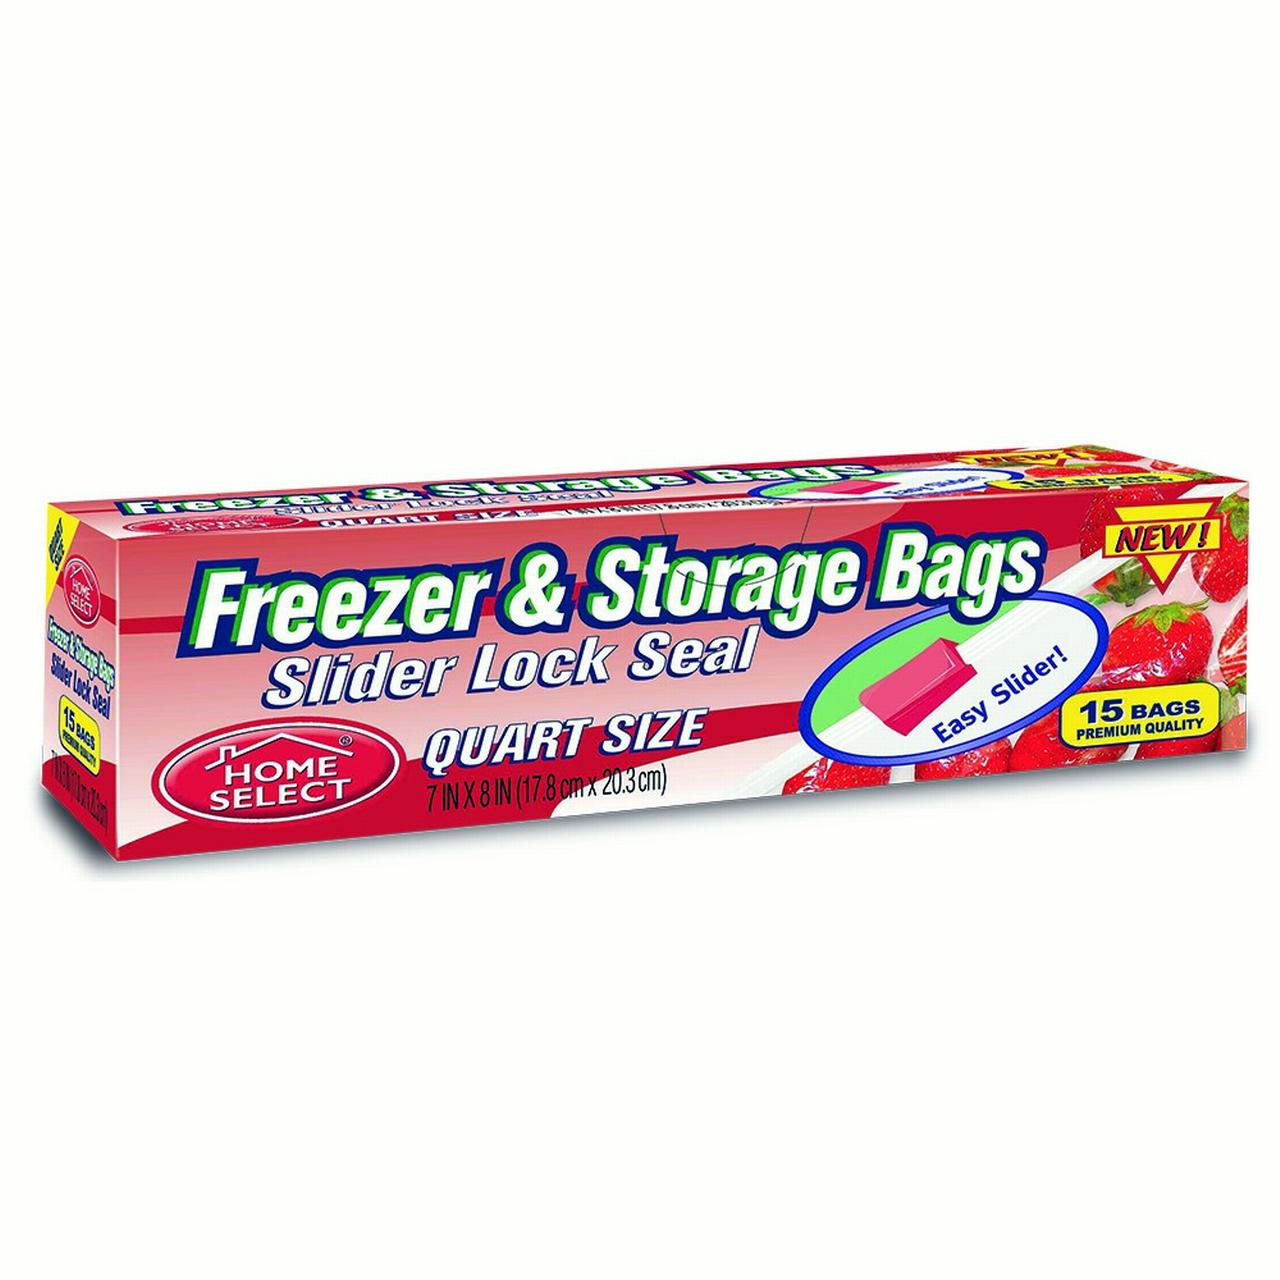 Home Select Freezer & Storage Bags, Slider Lock Seal, Quart Size, 15 Ct